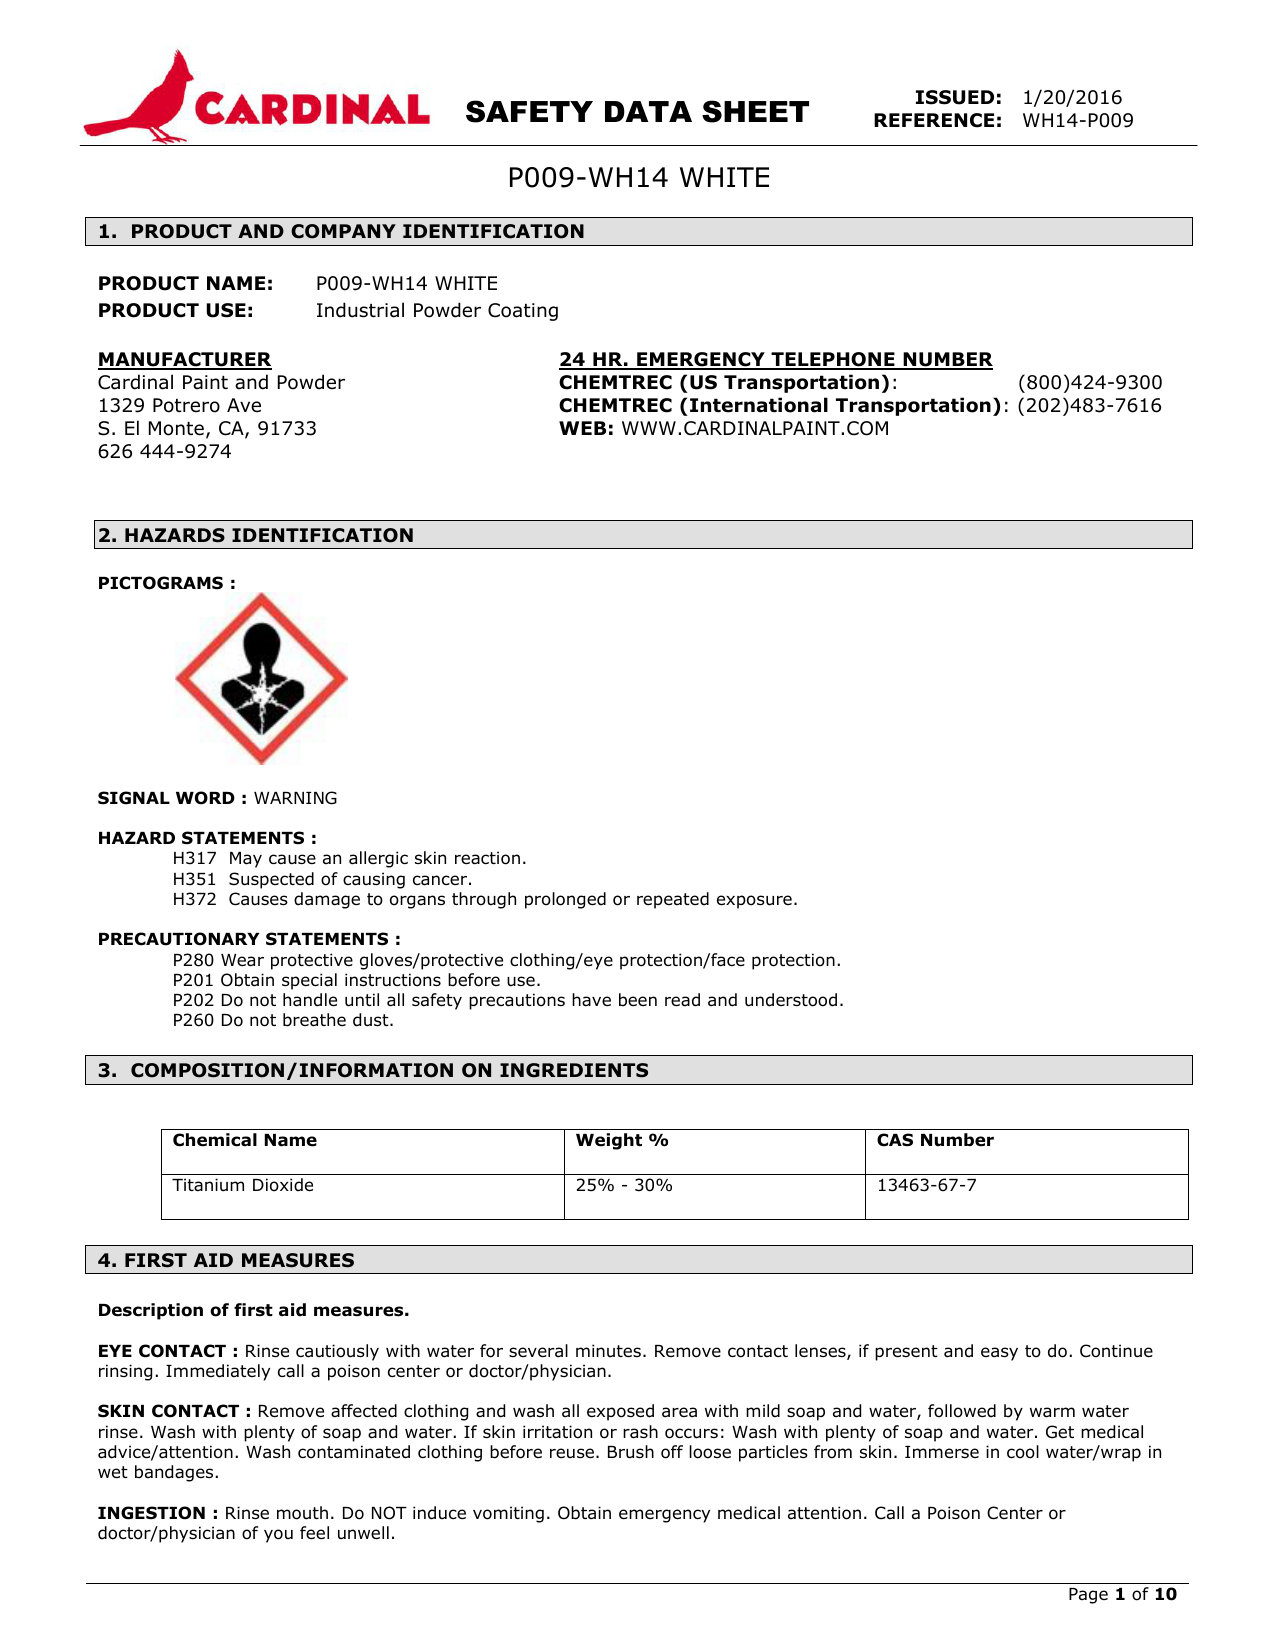 Always read the Safety Data Sheet before using any new chemical or process. It contains important safety information. We'll cover how to read and understand the SDS in a following lesson.